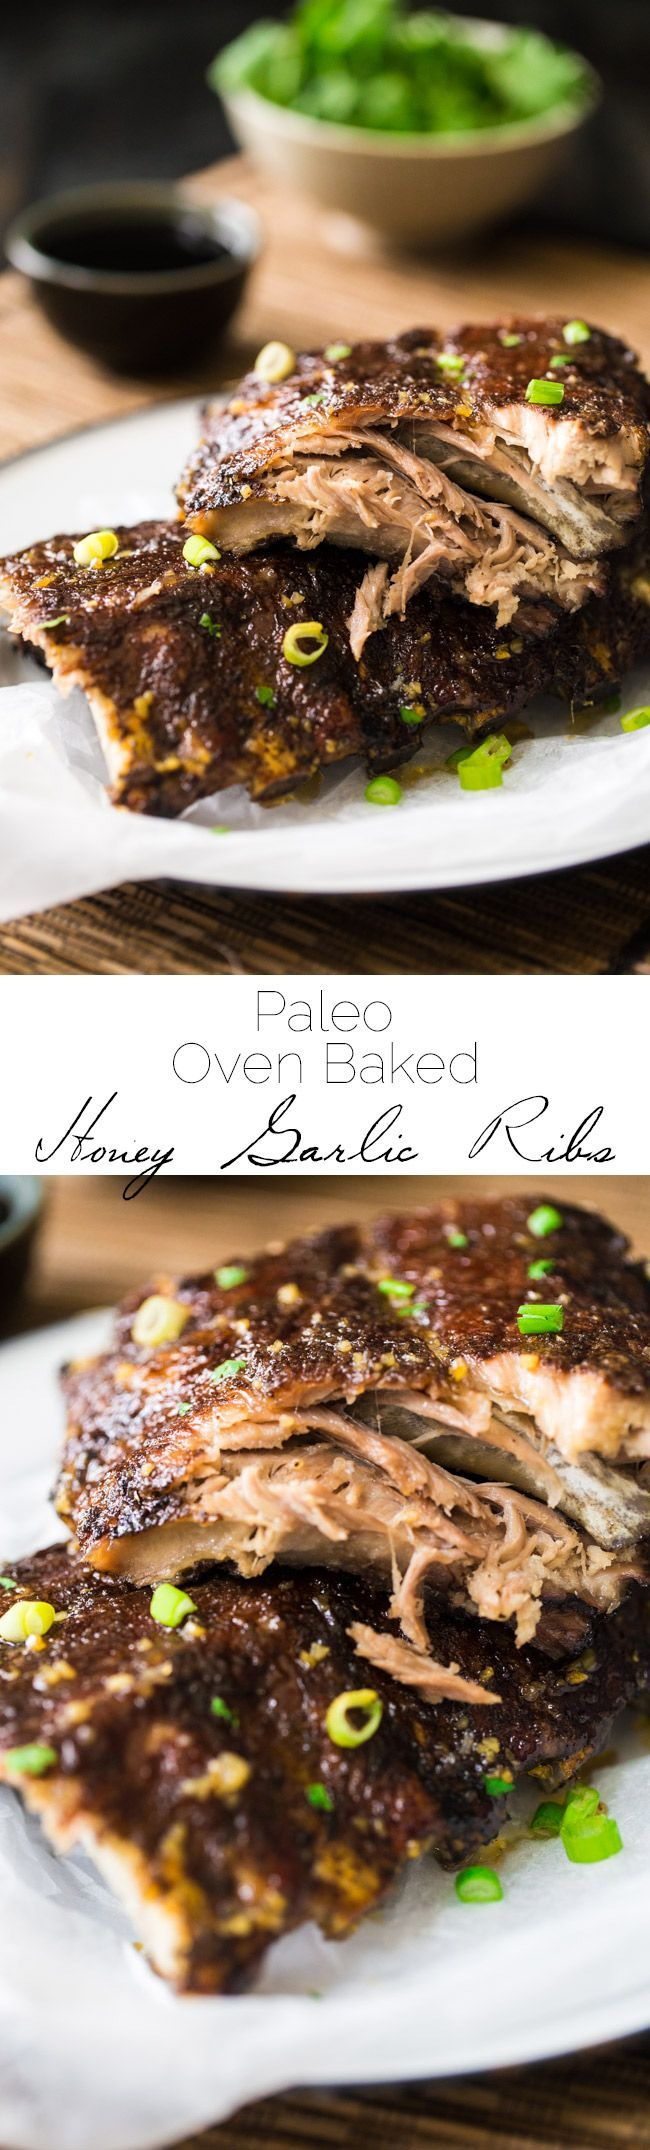 Paleo 5 Spice Honey Garlic Oven Baked Ribs - Sticky, sweet, healthier ribs that are gluten free, Paleo and made in the oven. These fall RIGHT OFF THE BONE! | Foodfaithfitness.com | @FoodFaithFit